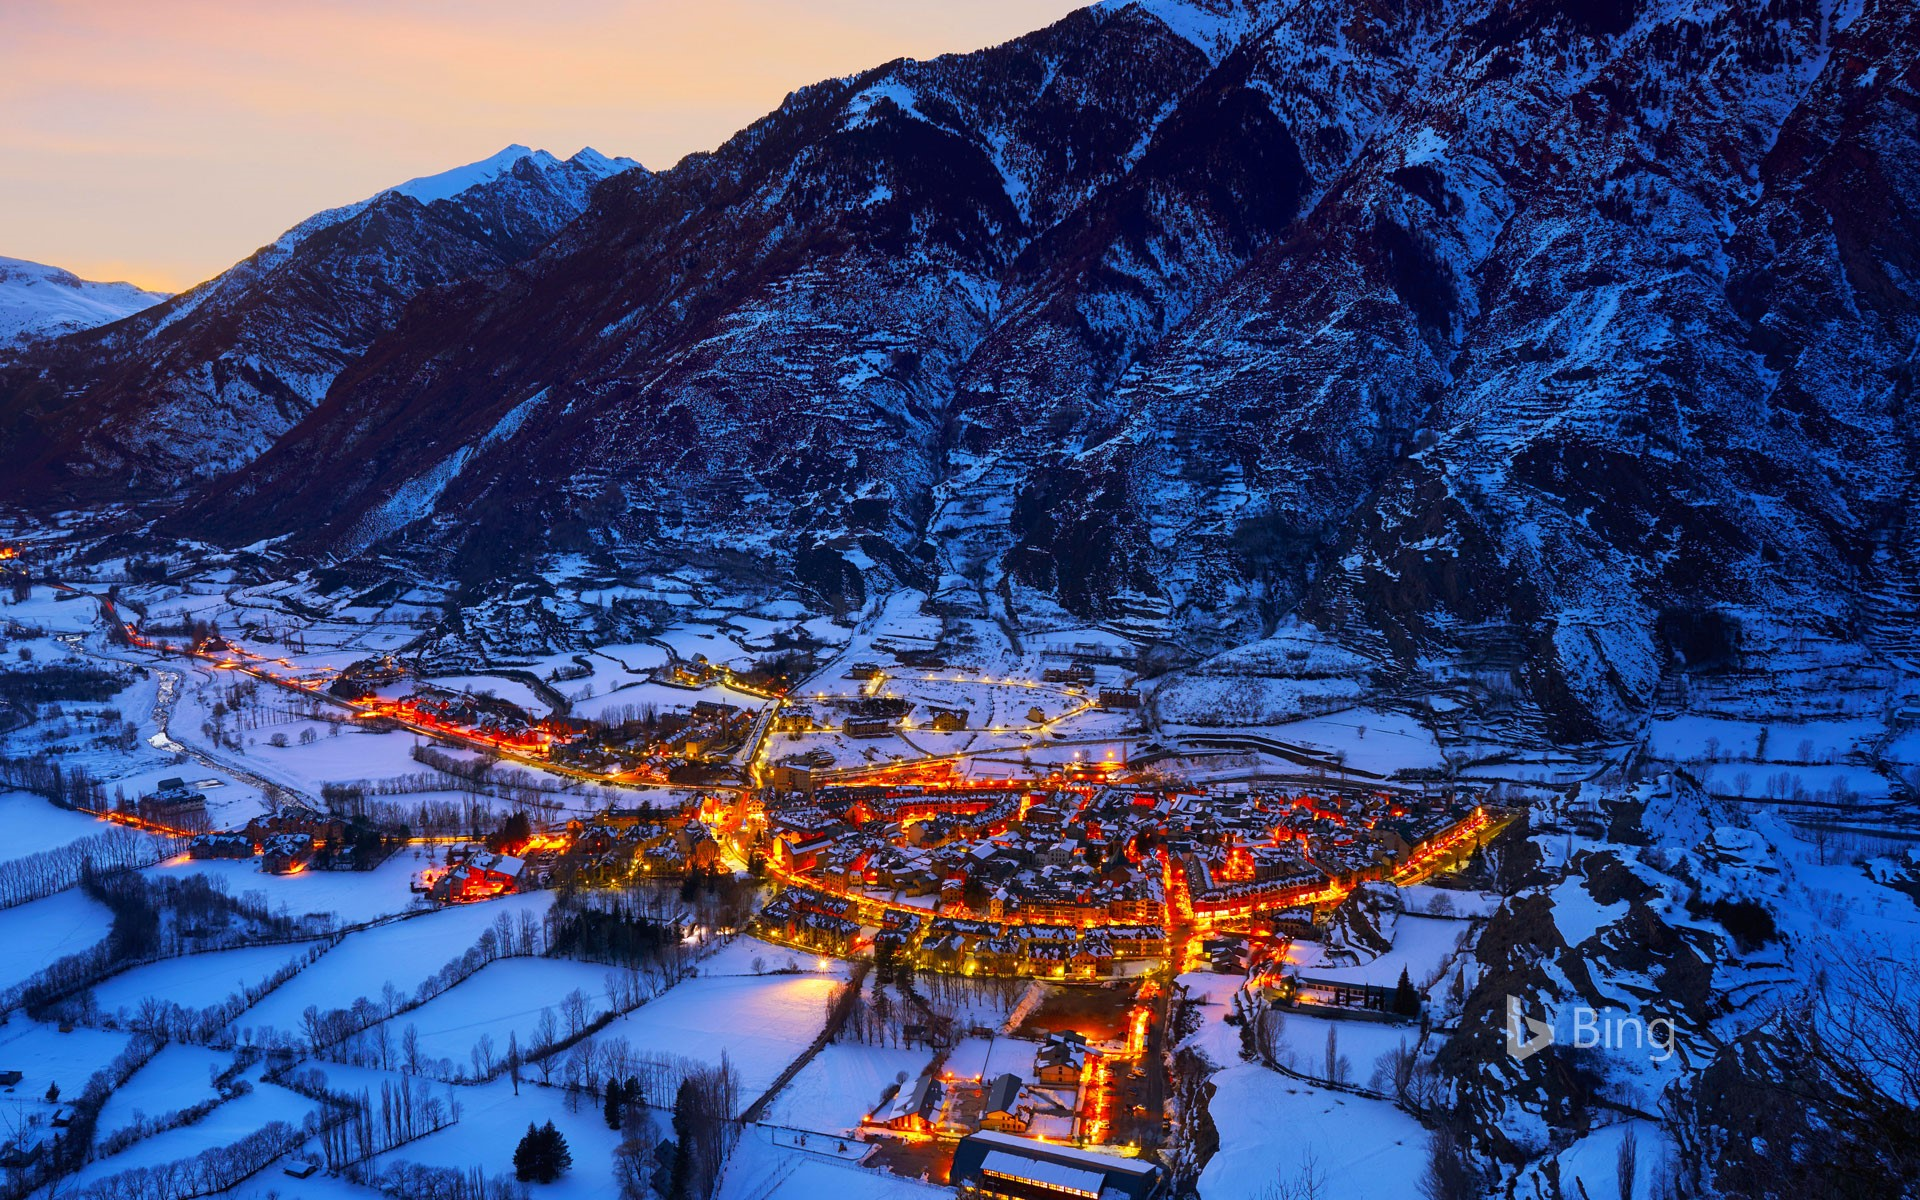 The village of Benasque, Huesca, Spain